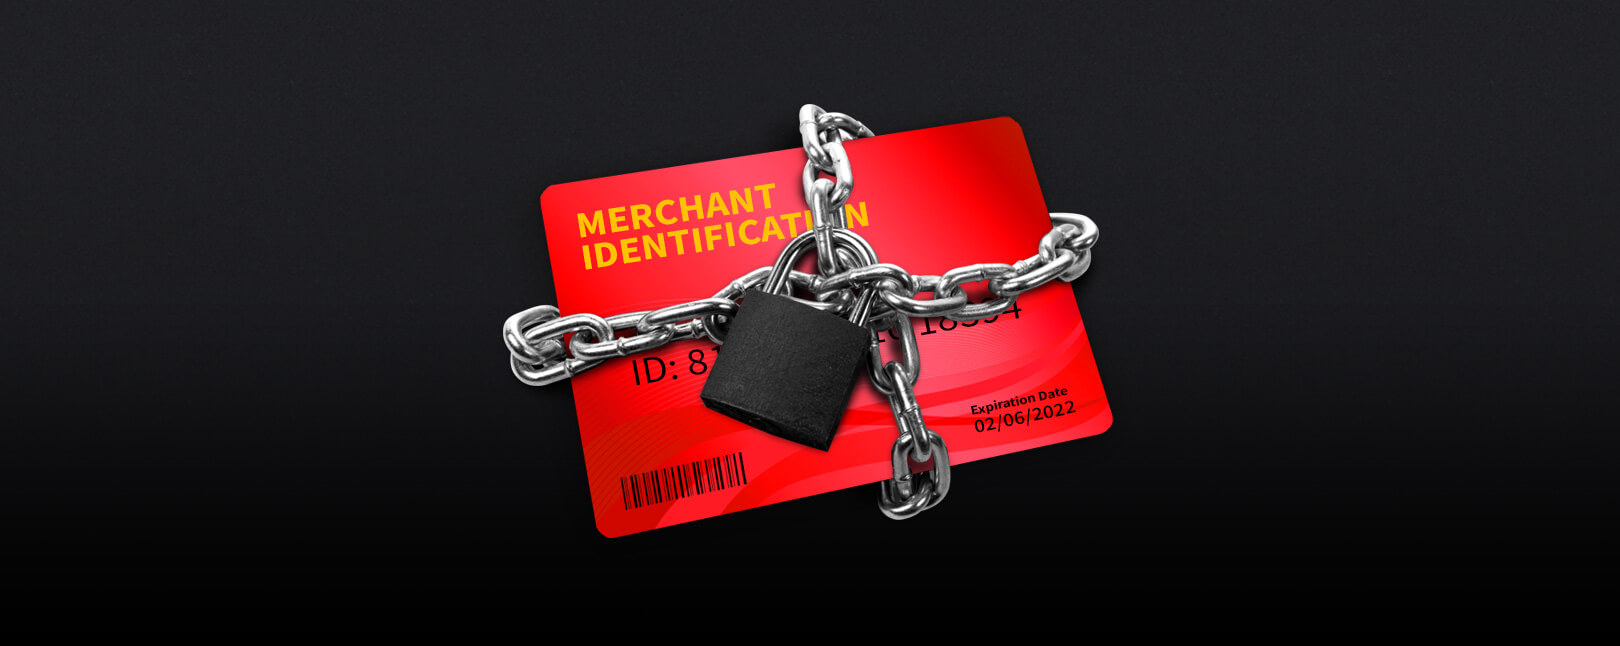 Merchant Identification Number